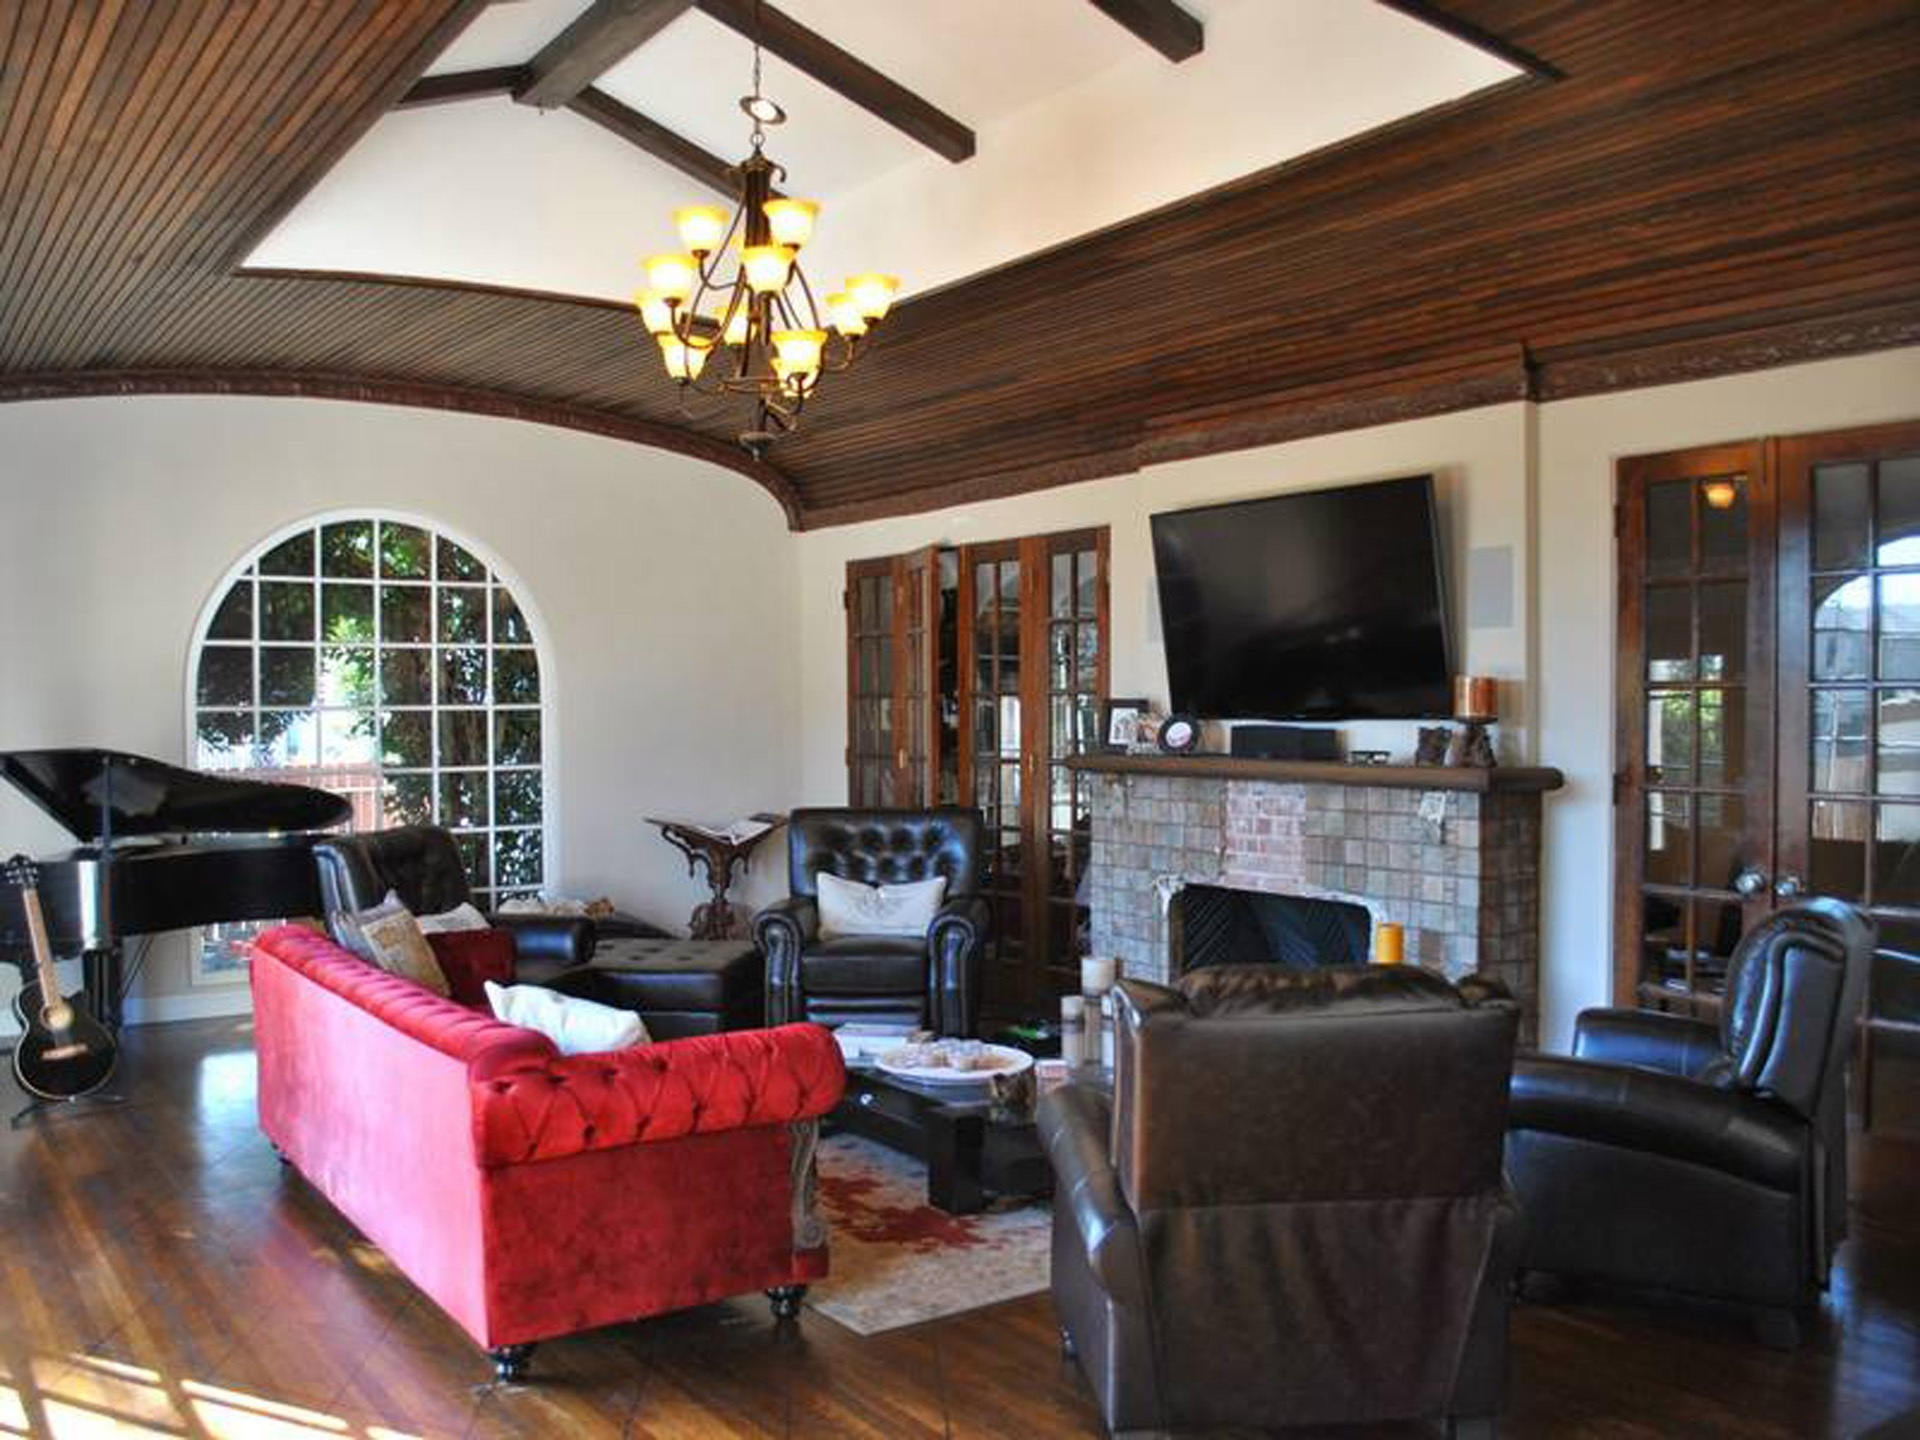 A nice living room of filming locations free image for Living room 75020